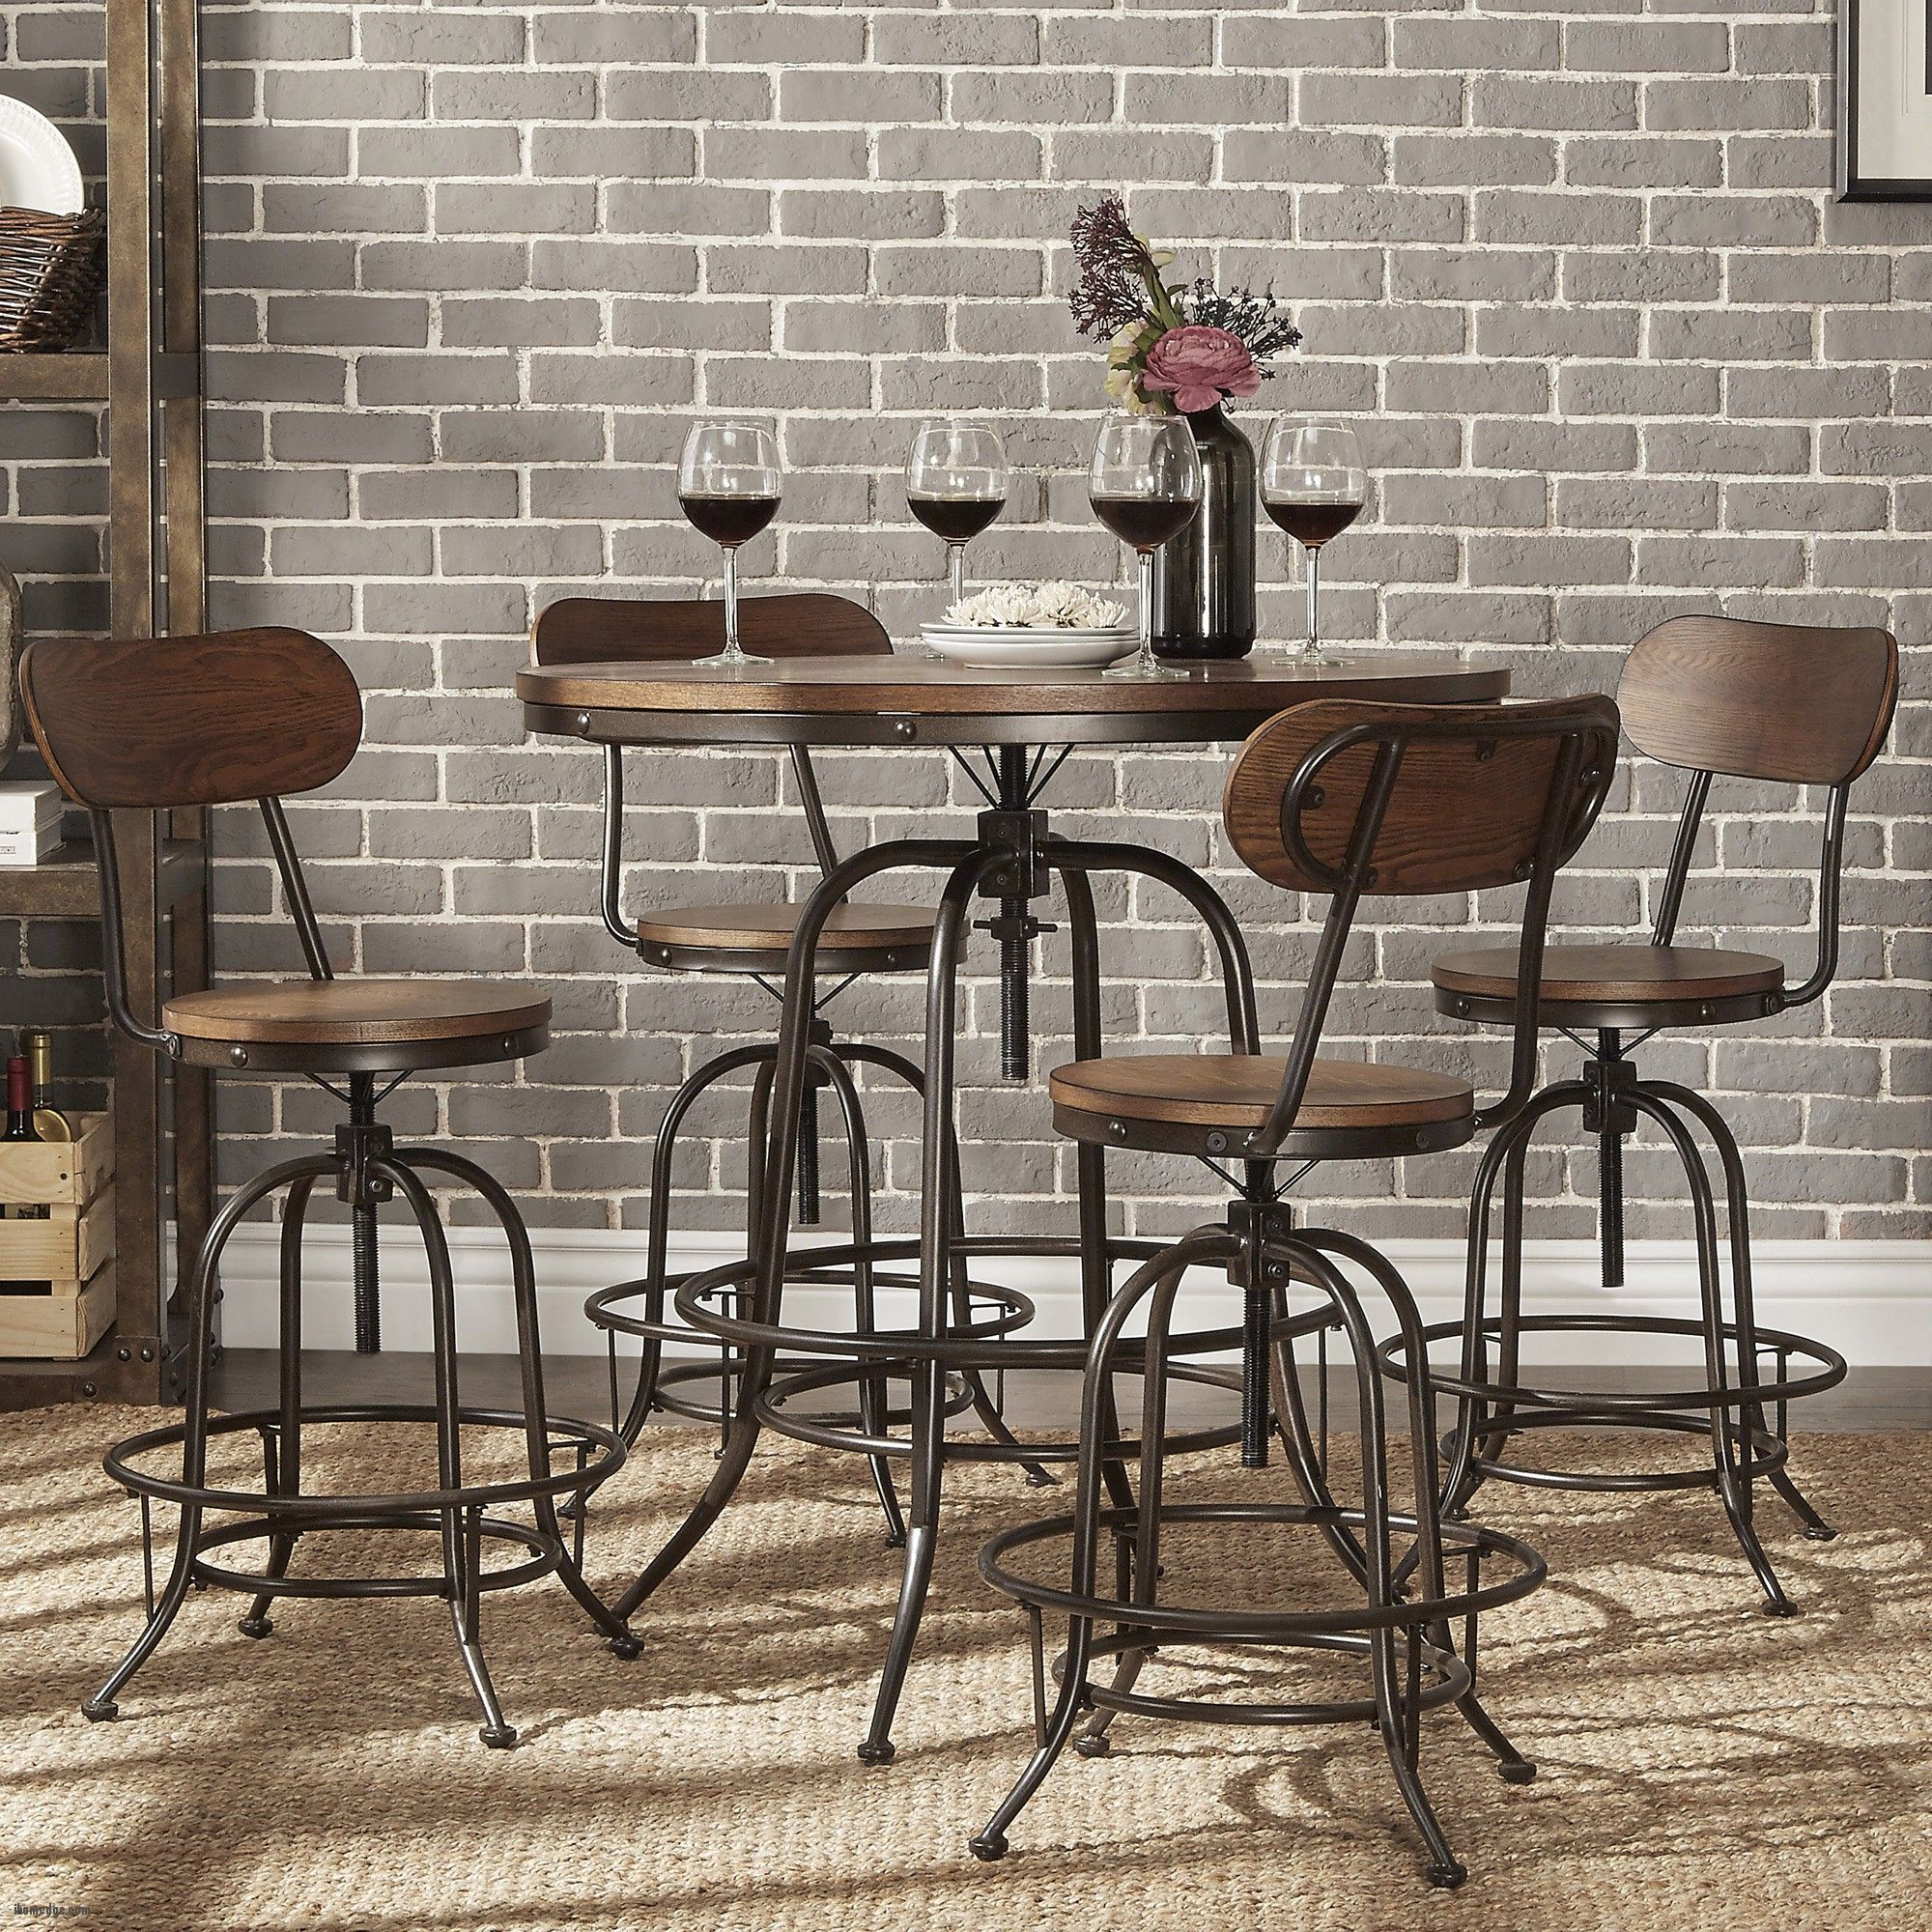 good Lovely Round Bar Table , Berwick Industrial Style Round Counter height  Pub Adjustable Dining Set